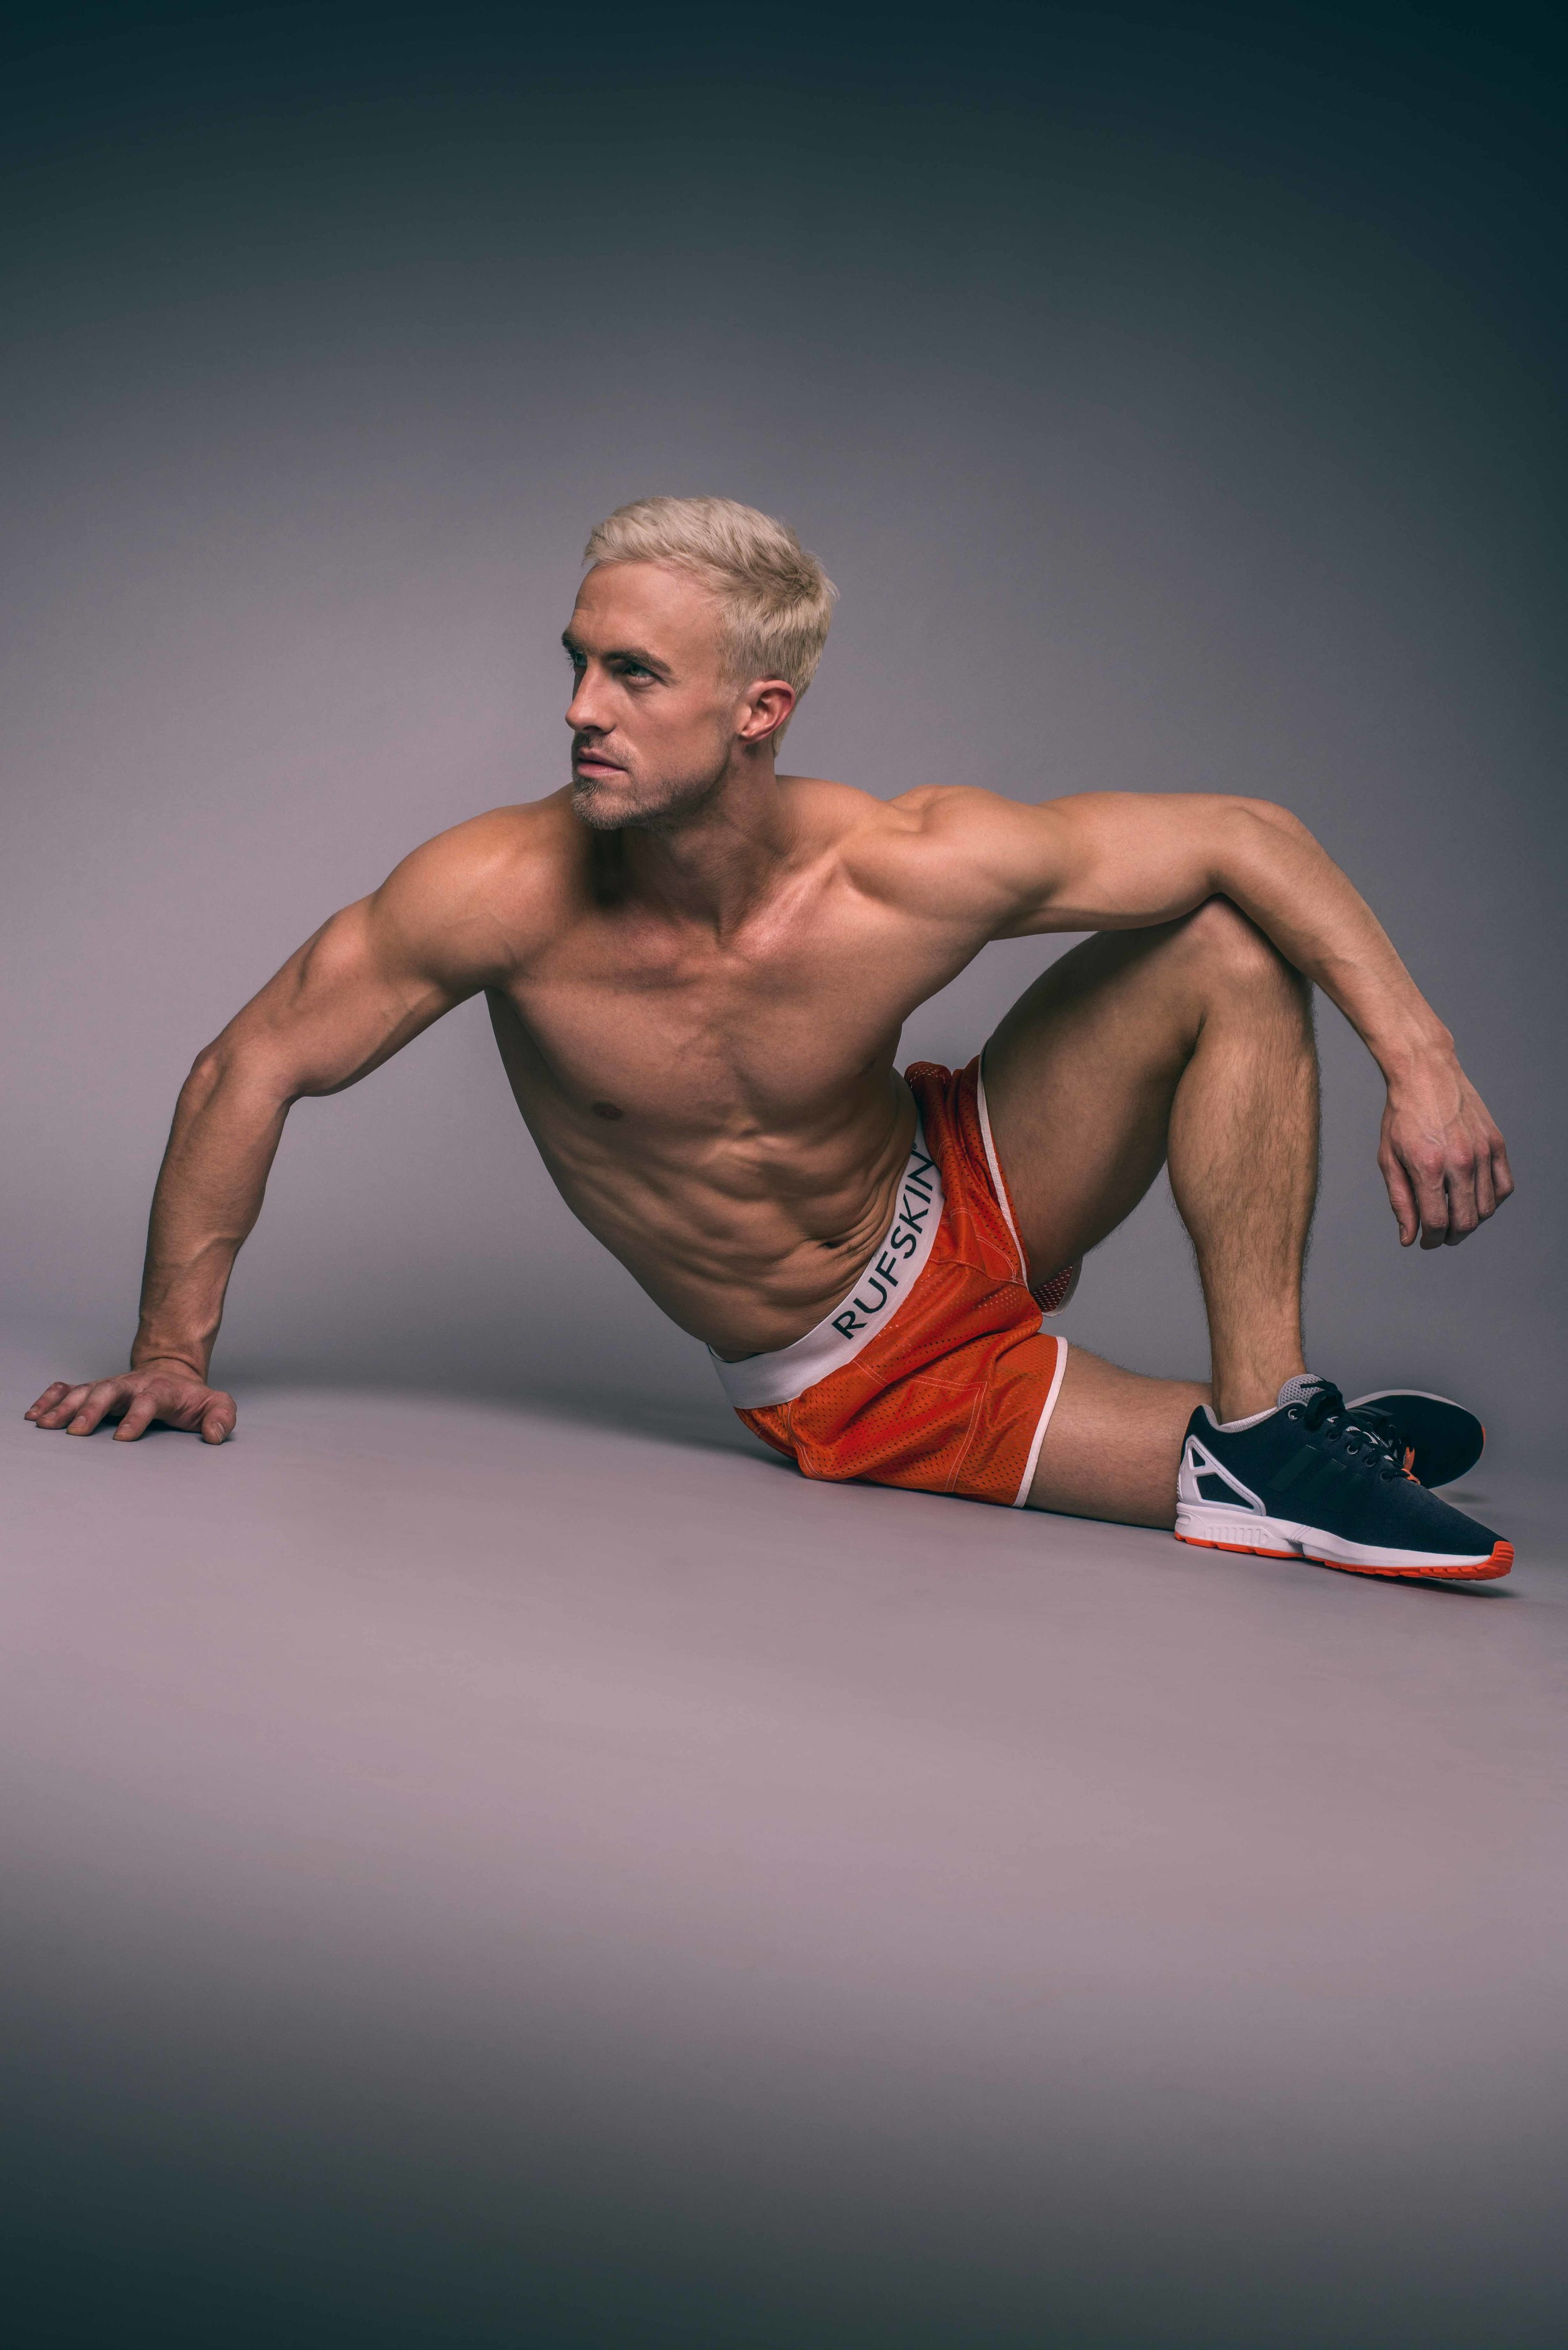 Shorts by Rufskin, trainers by Adidas available from JDSports Kevin McGuire 01 2015 (16).jpg